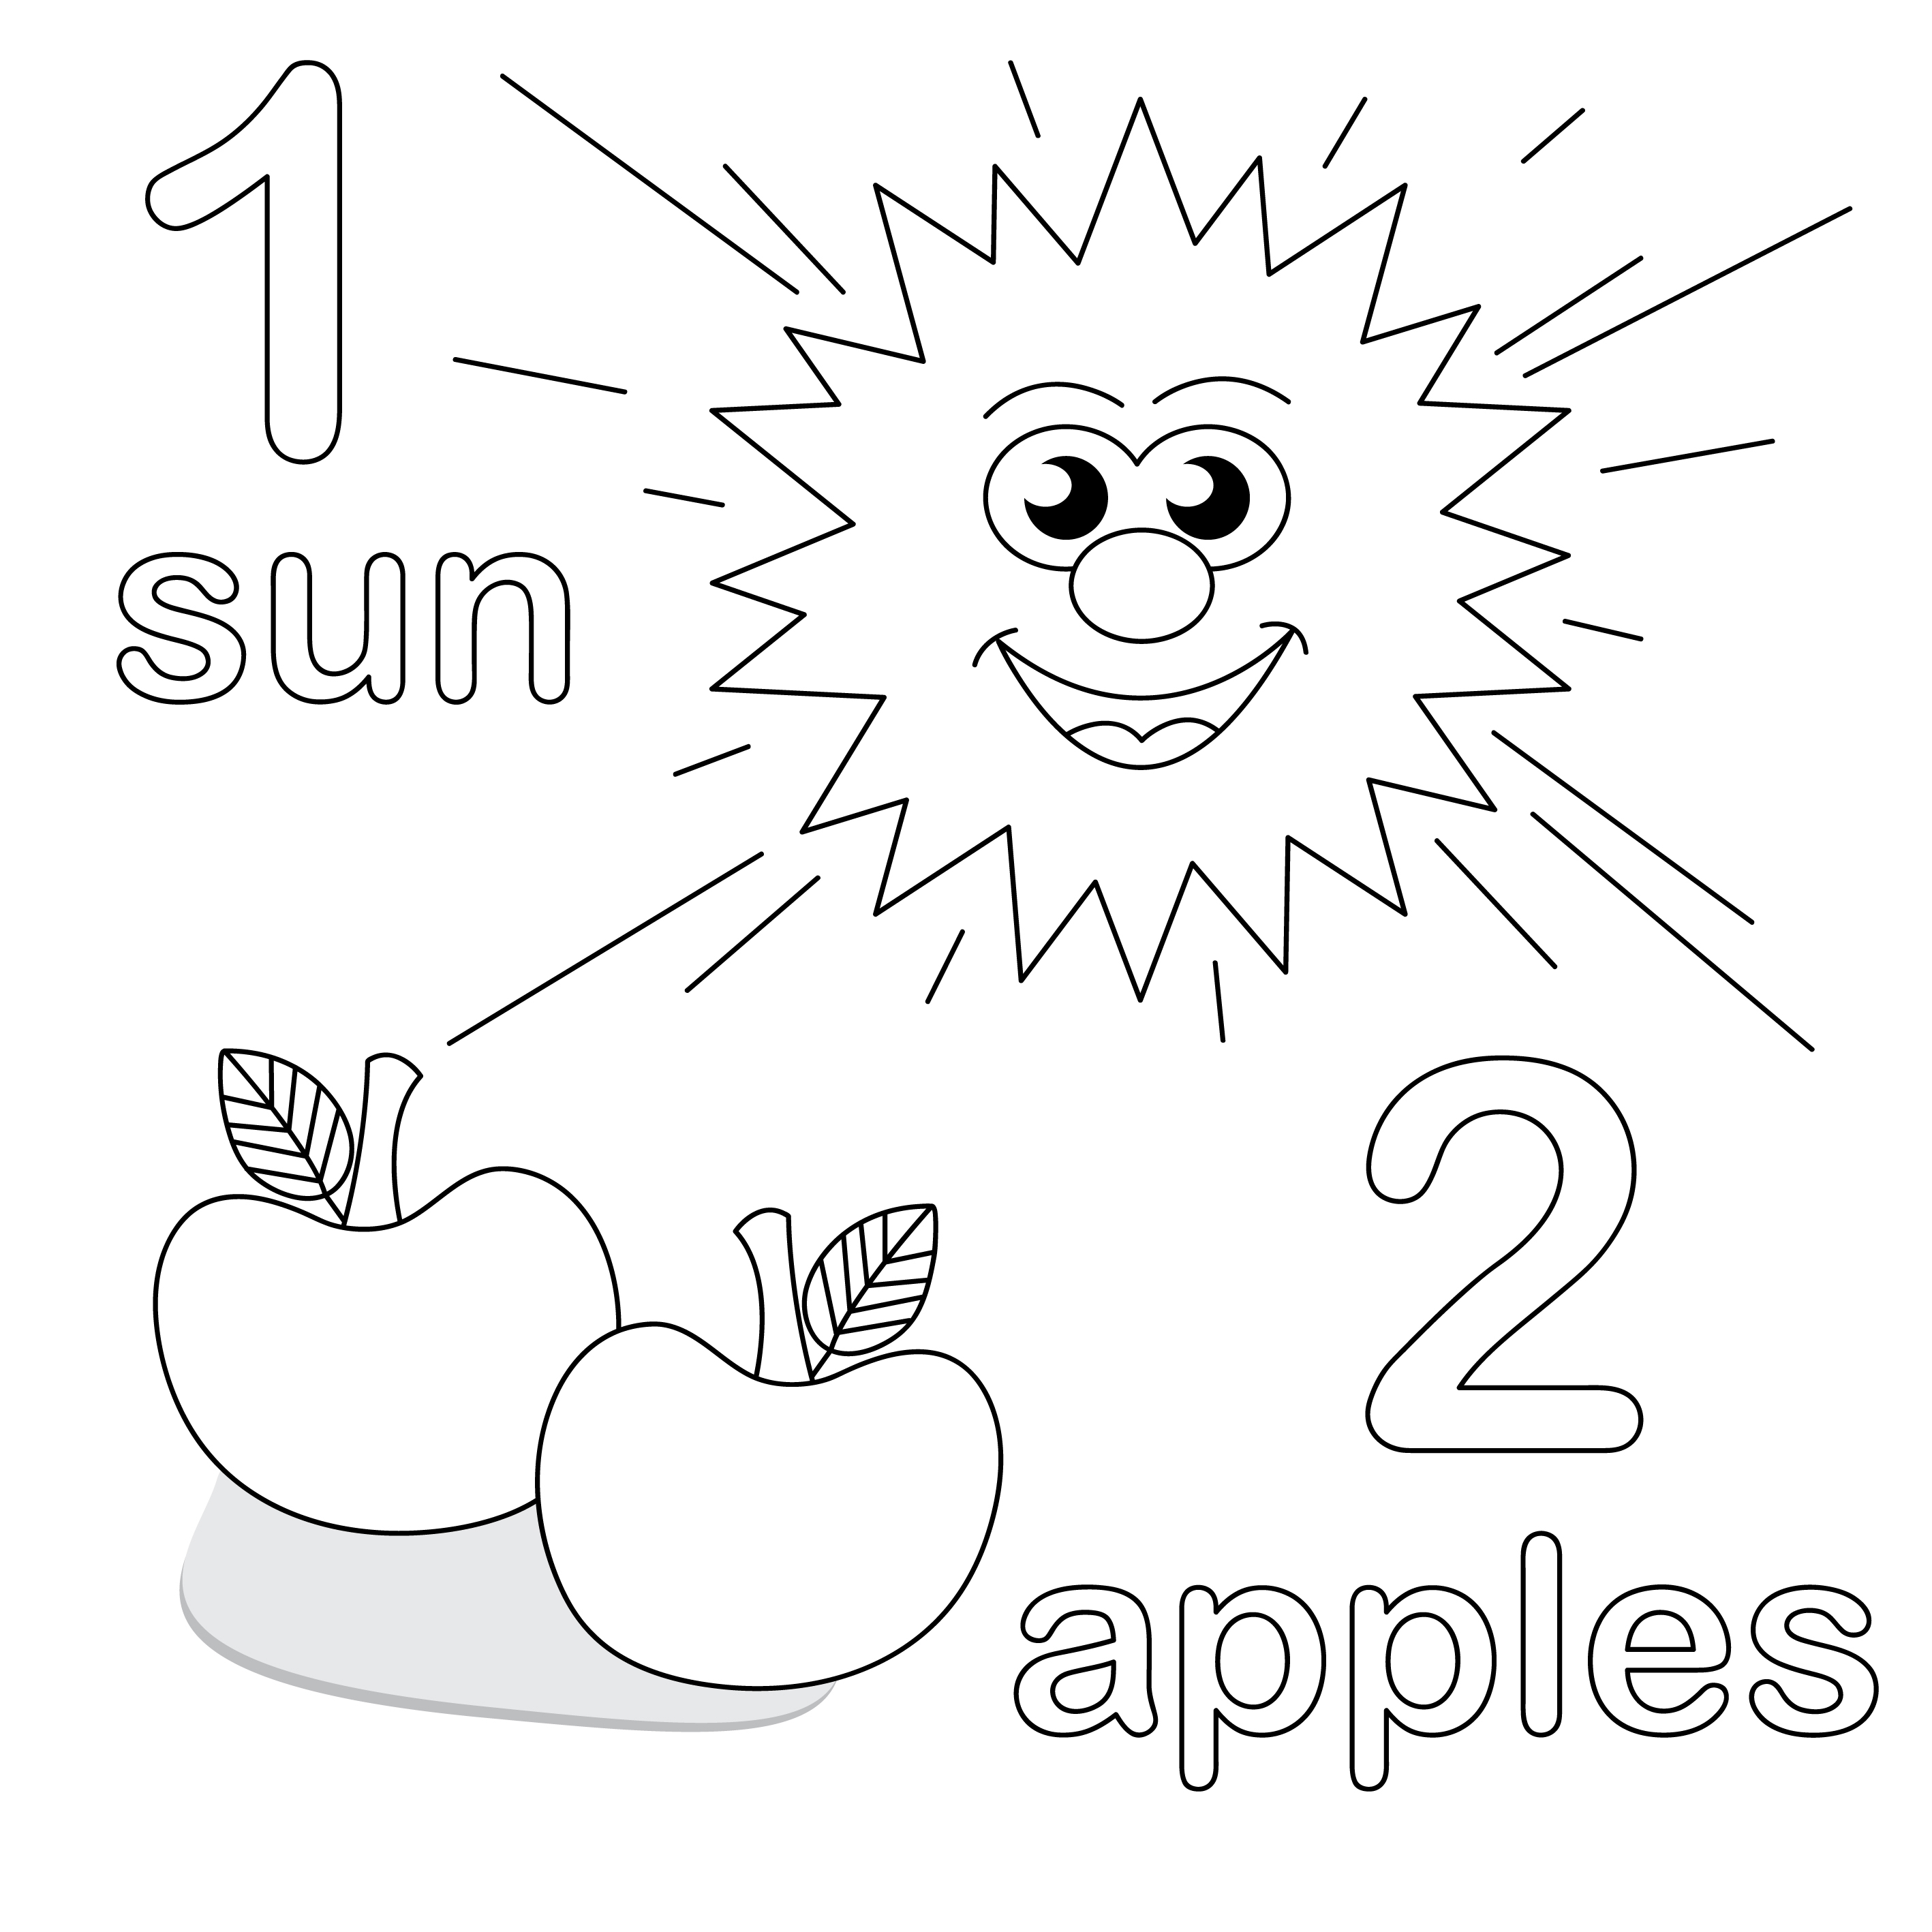 Coloring sheets for preschool - Download Preschool Coloring Pages 1